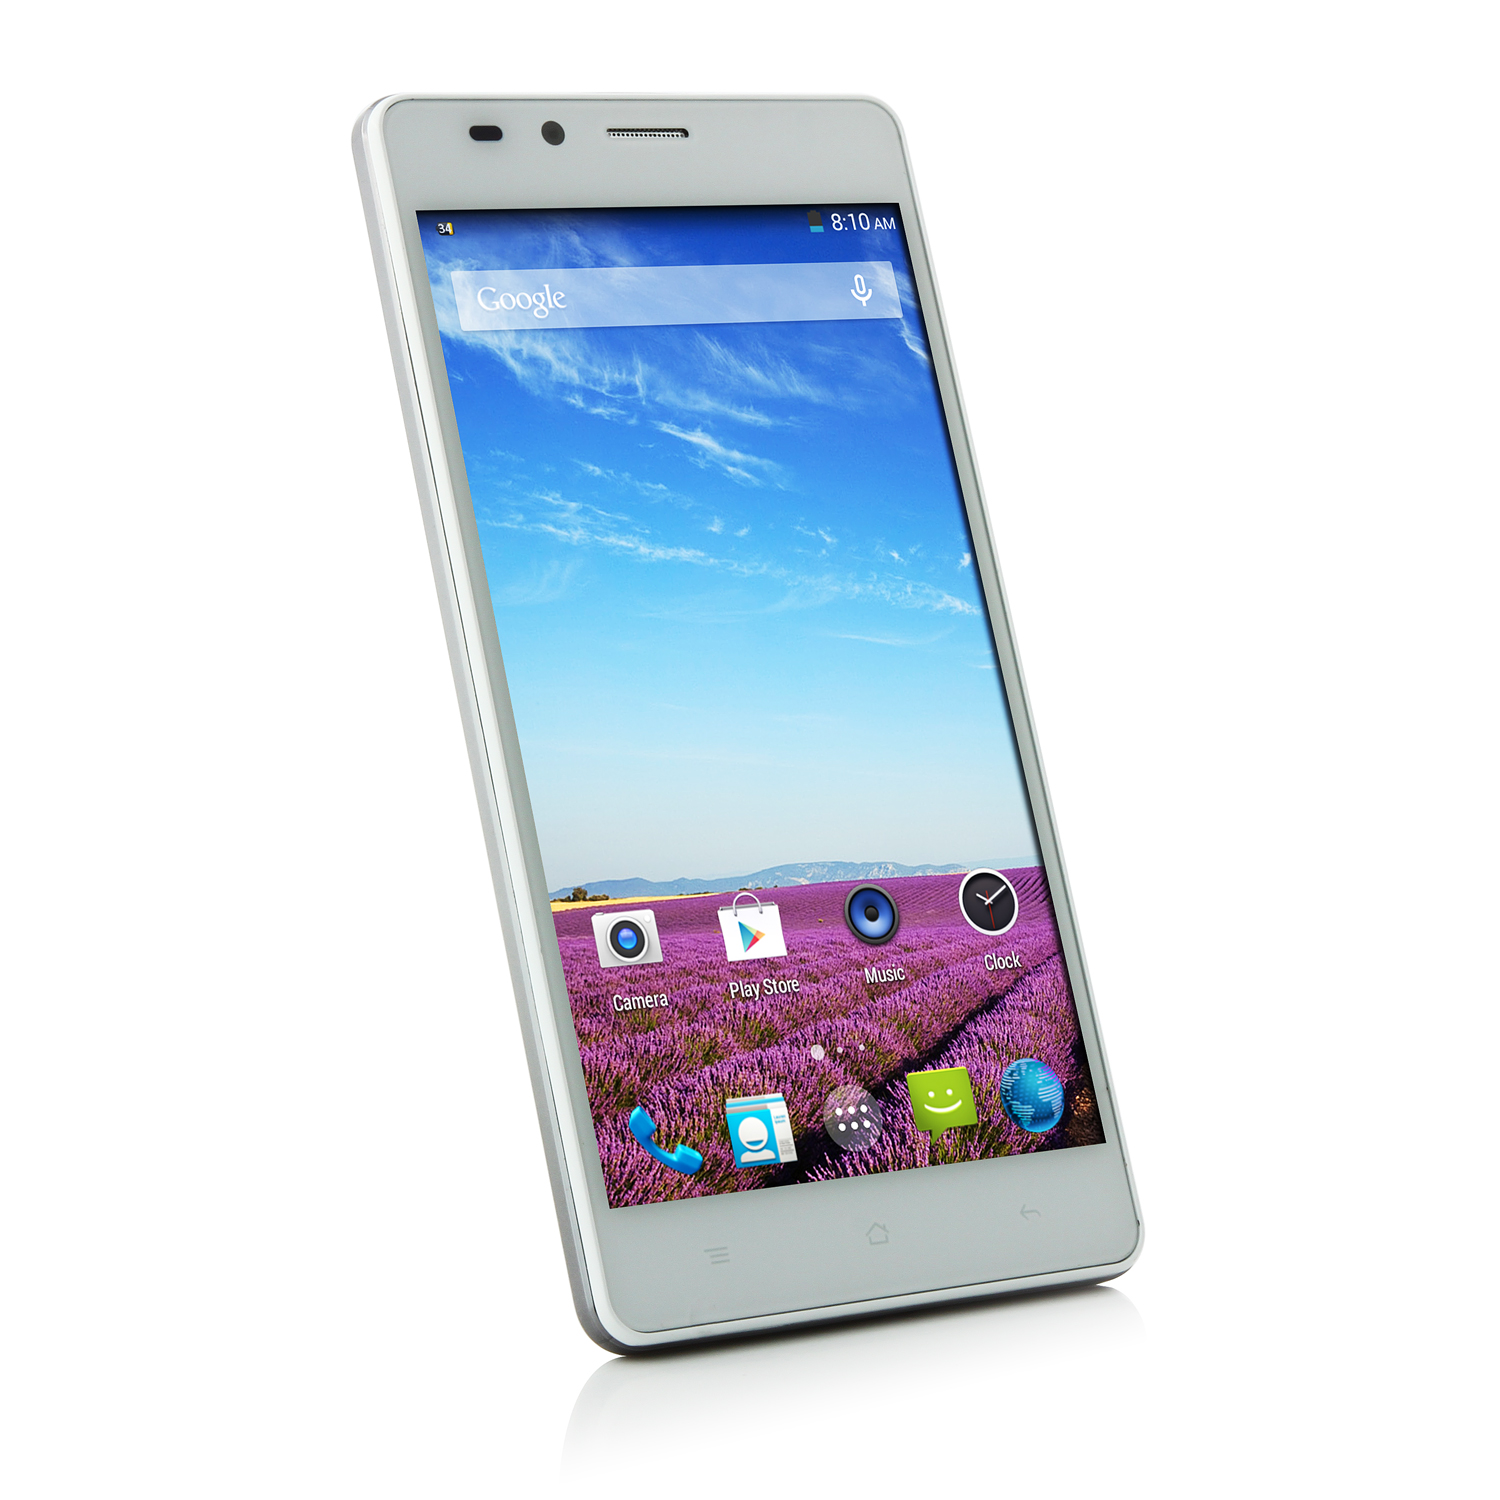 LANDVO L550 Smartphone Android 4.4 MTK6592M 5.0 Inch QHD Screen 3G White